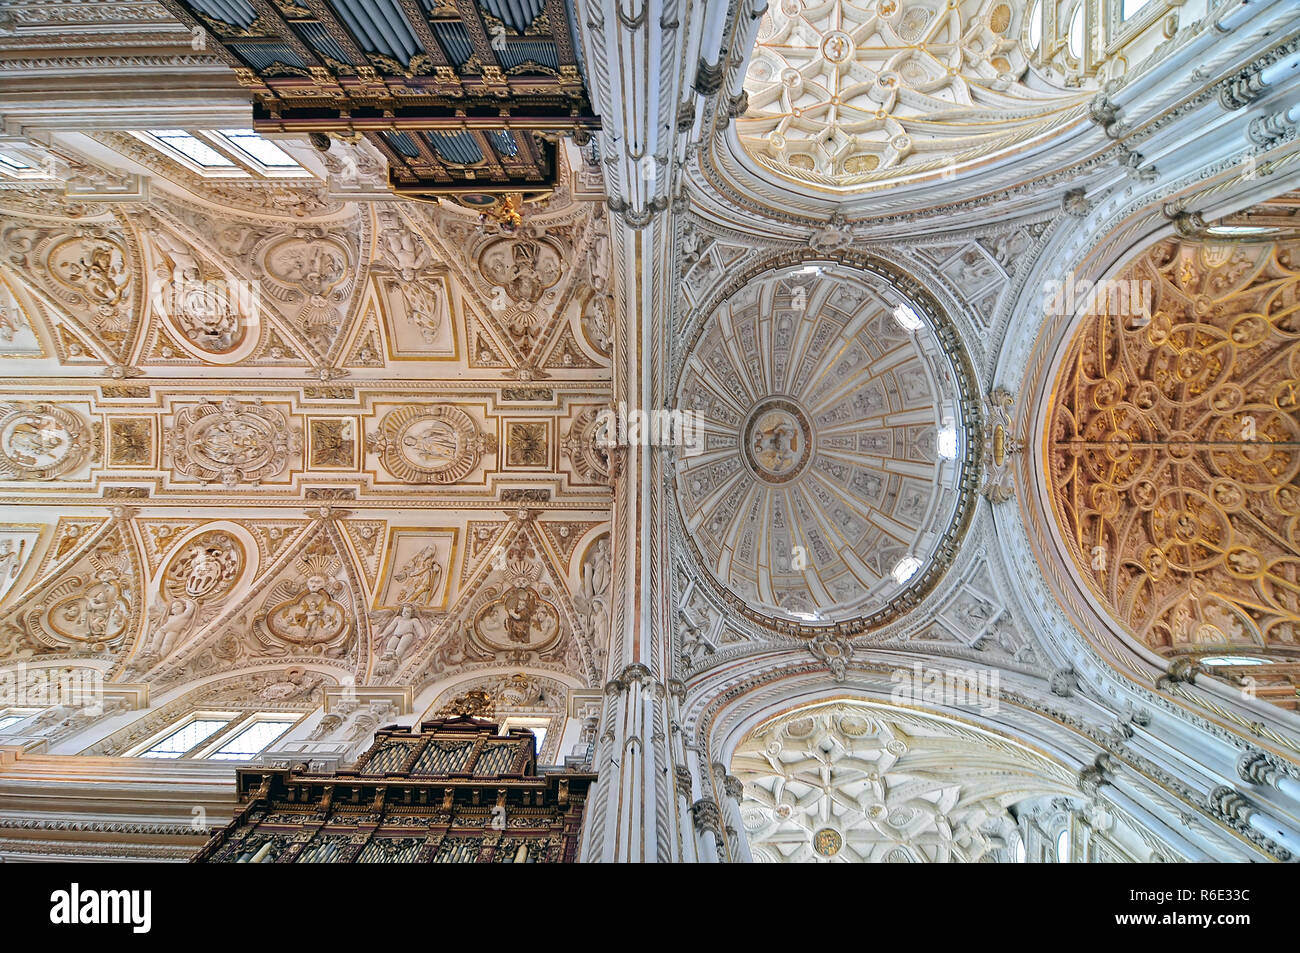 Mezquita Cathedral Interior, Ribbed Vaulted Ceilings And Dome Of The Transept In Cordoba, Spain - Stock Image